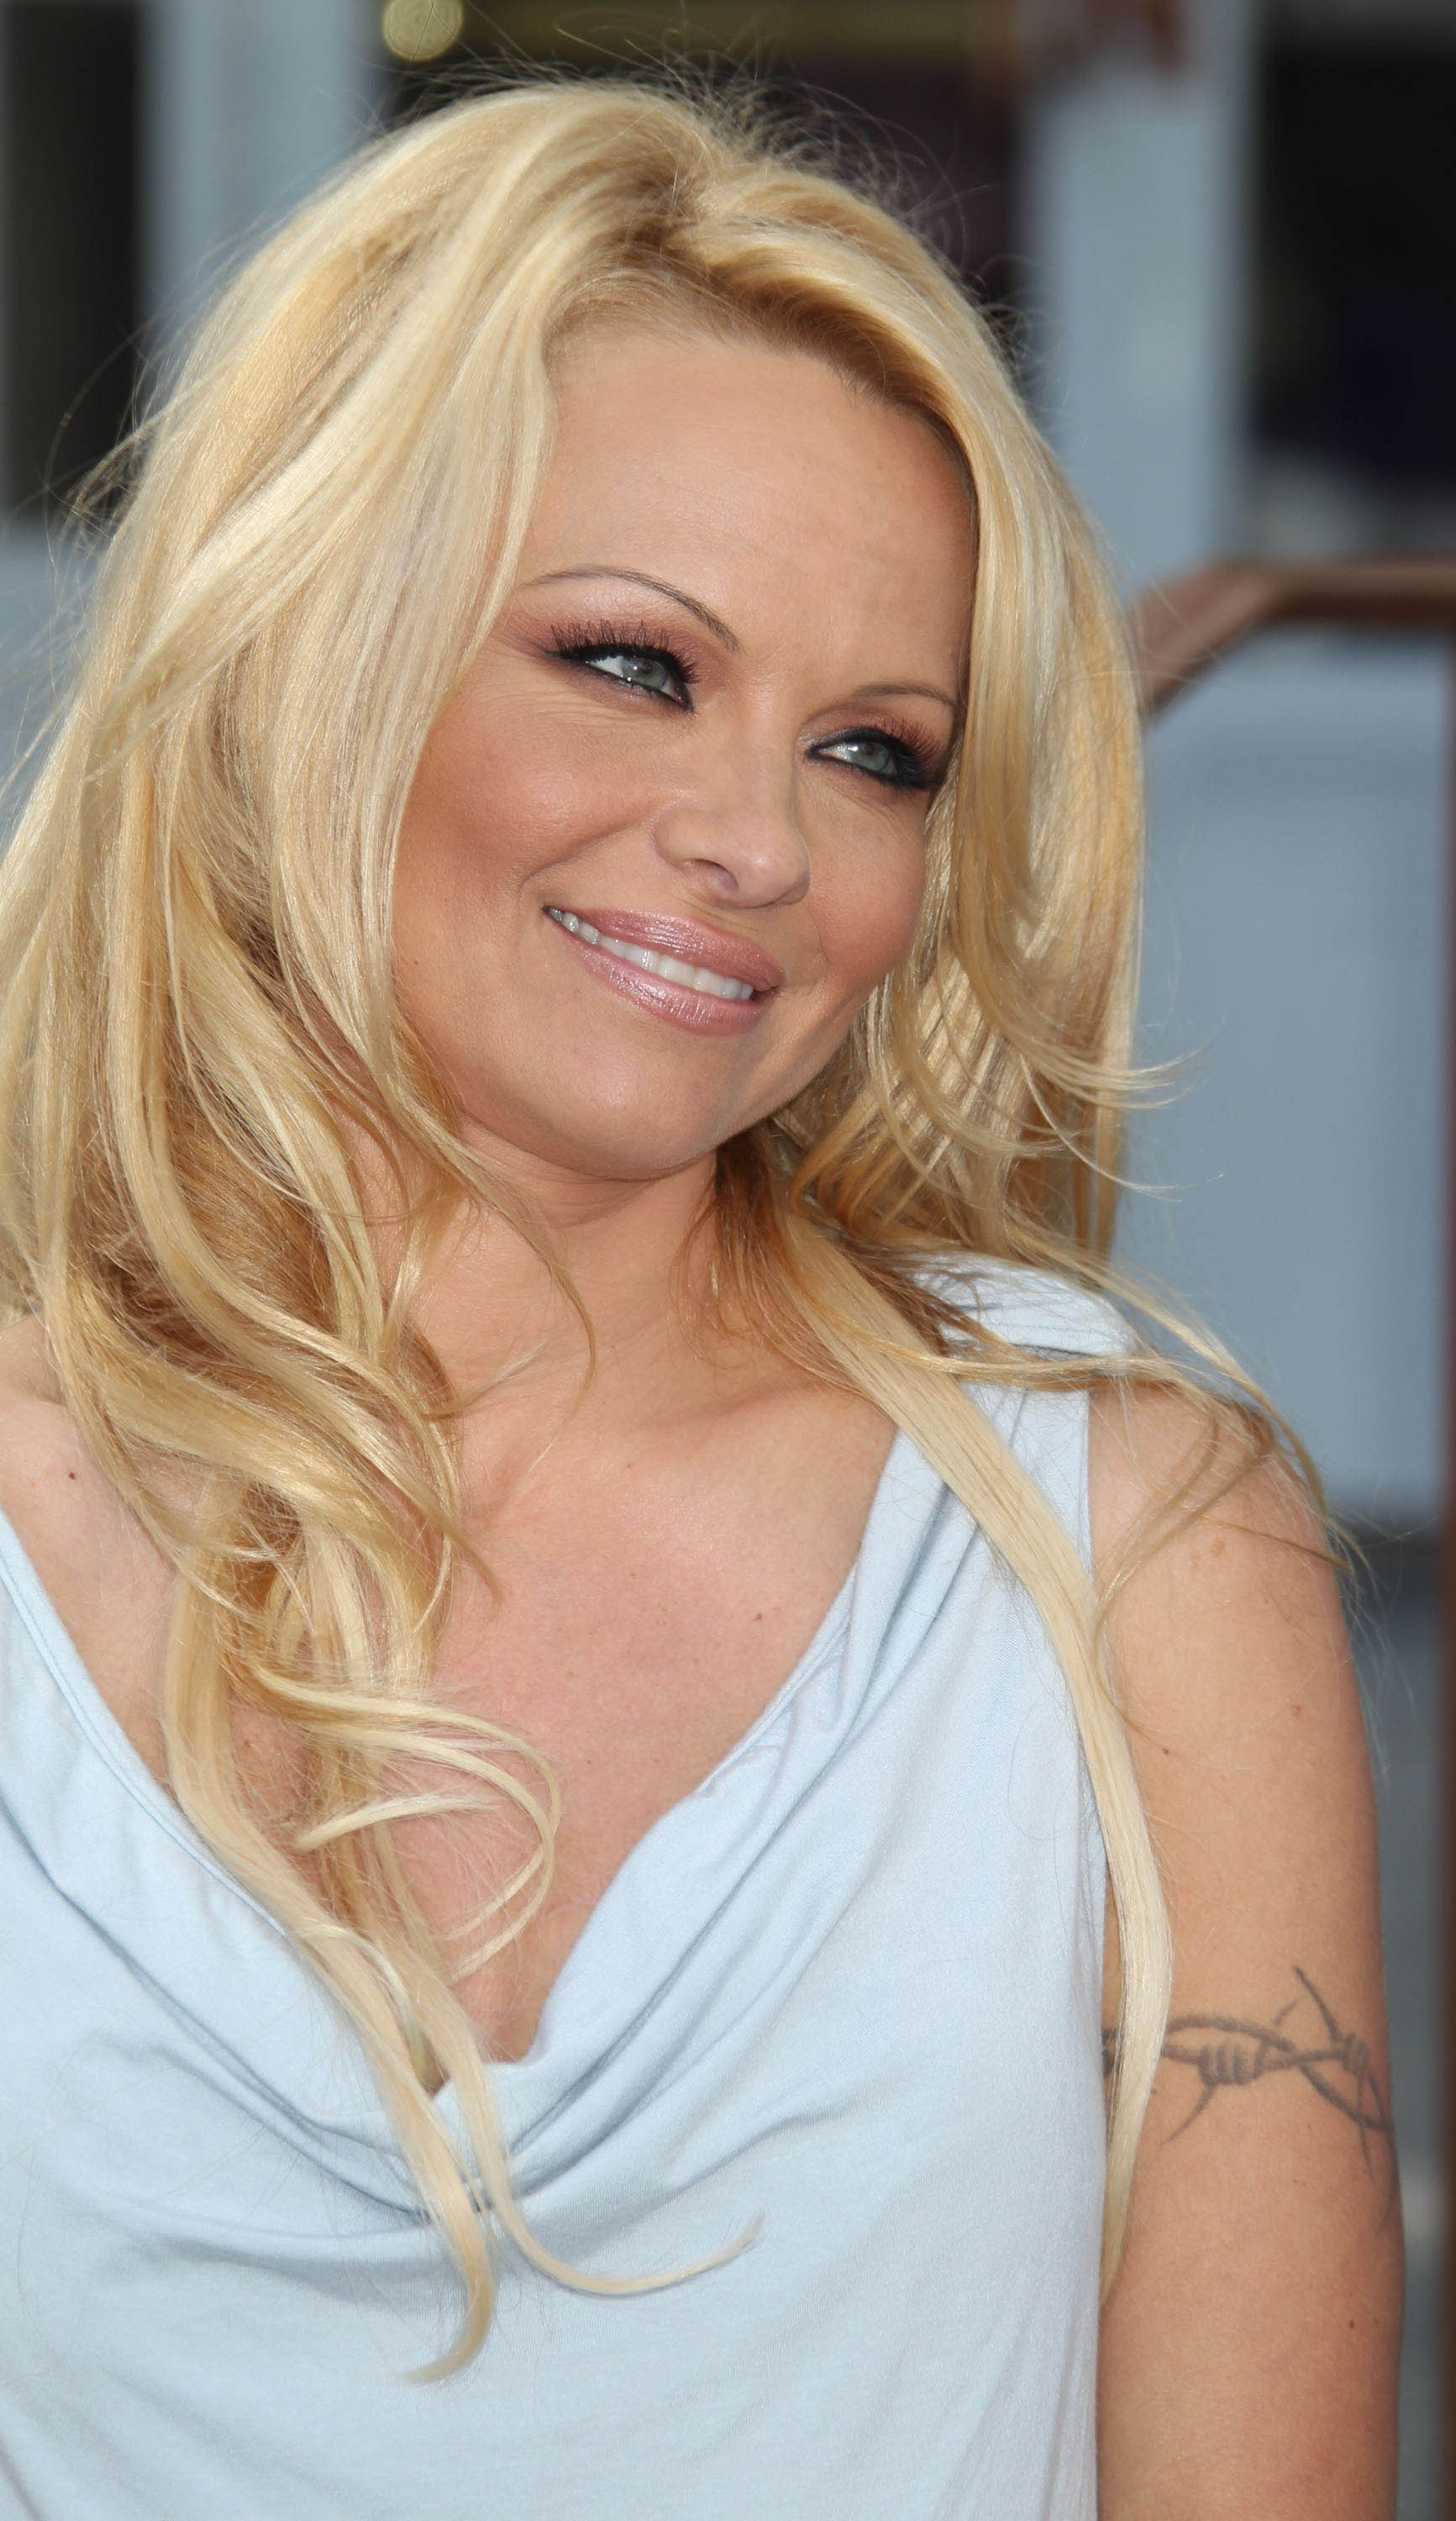 Pamela Anderson | Known people - famous people news and ... Pamela Anderson